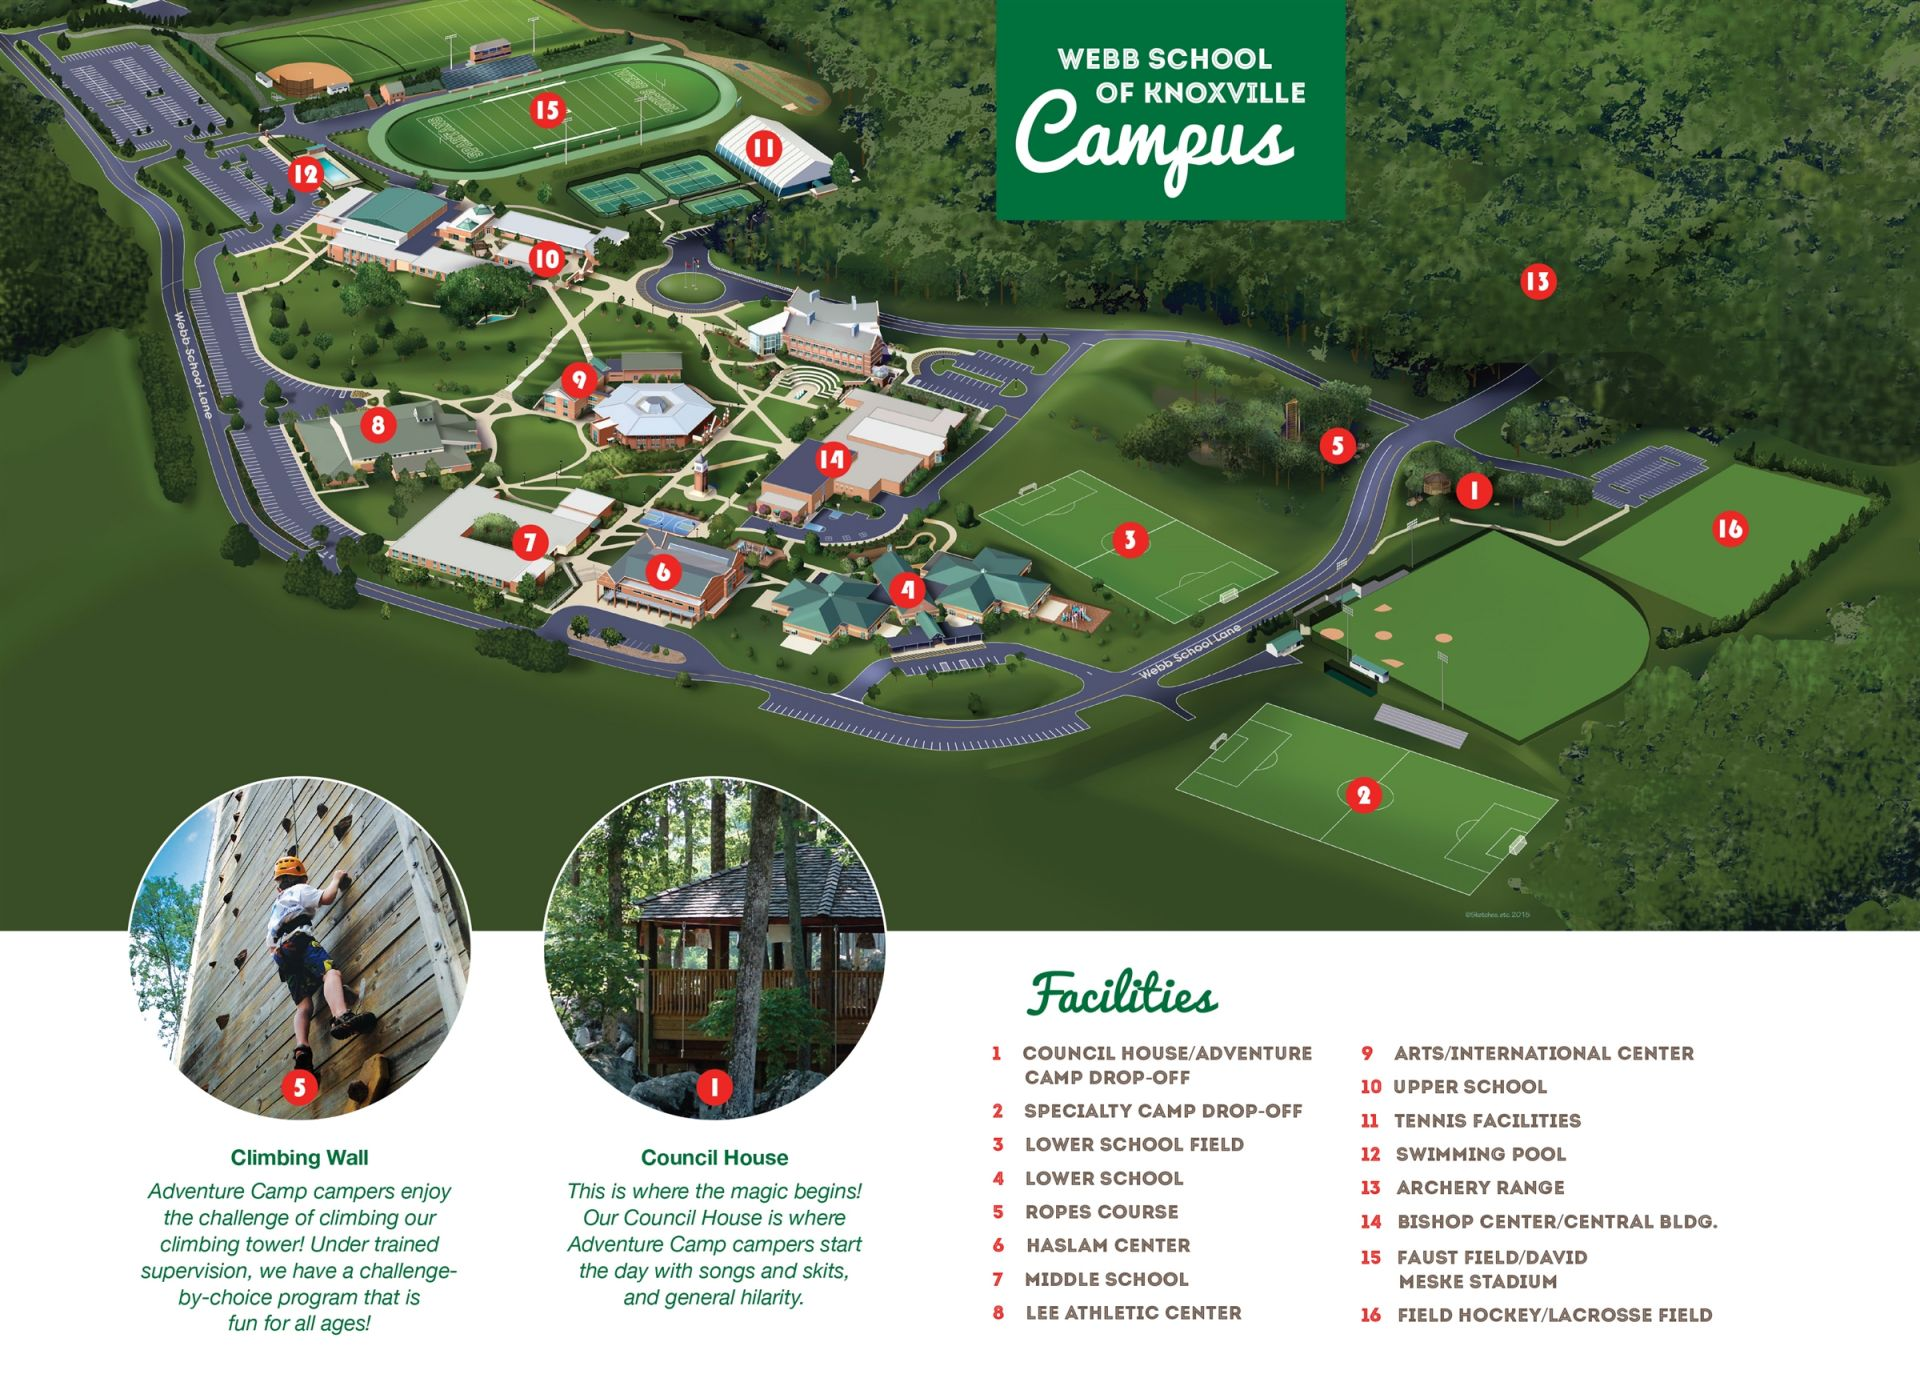 Pellissippi Campus Map.Webb School Of Knoxville Facilities And Directions